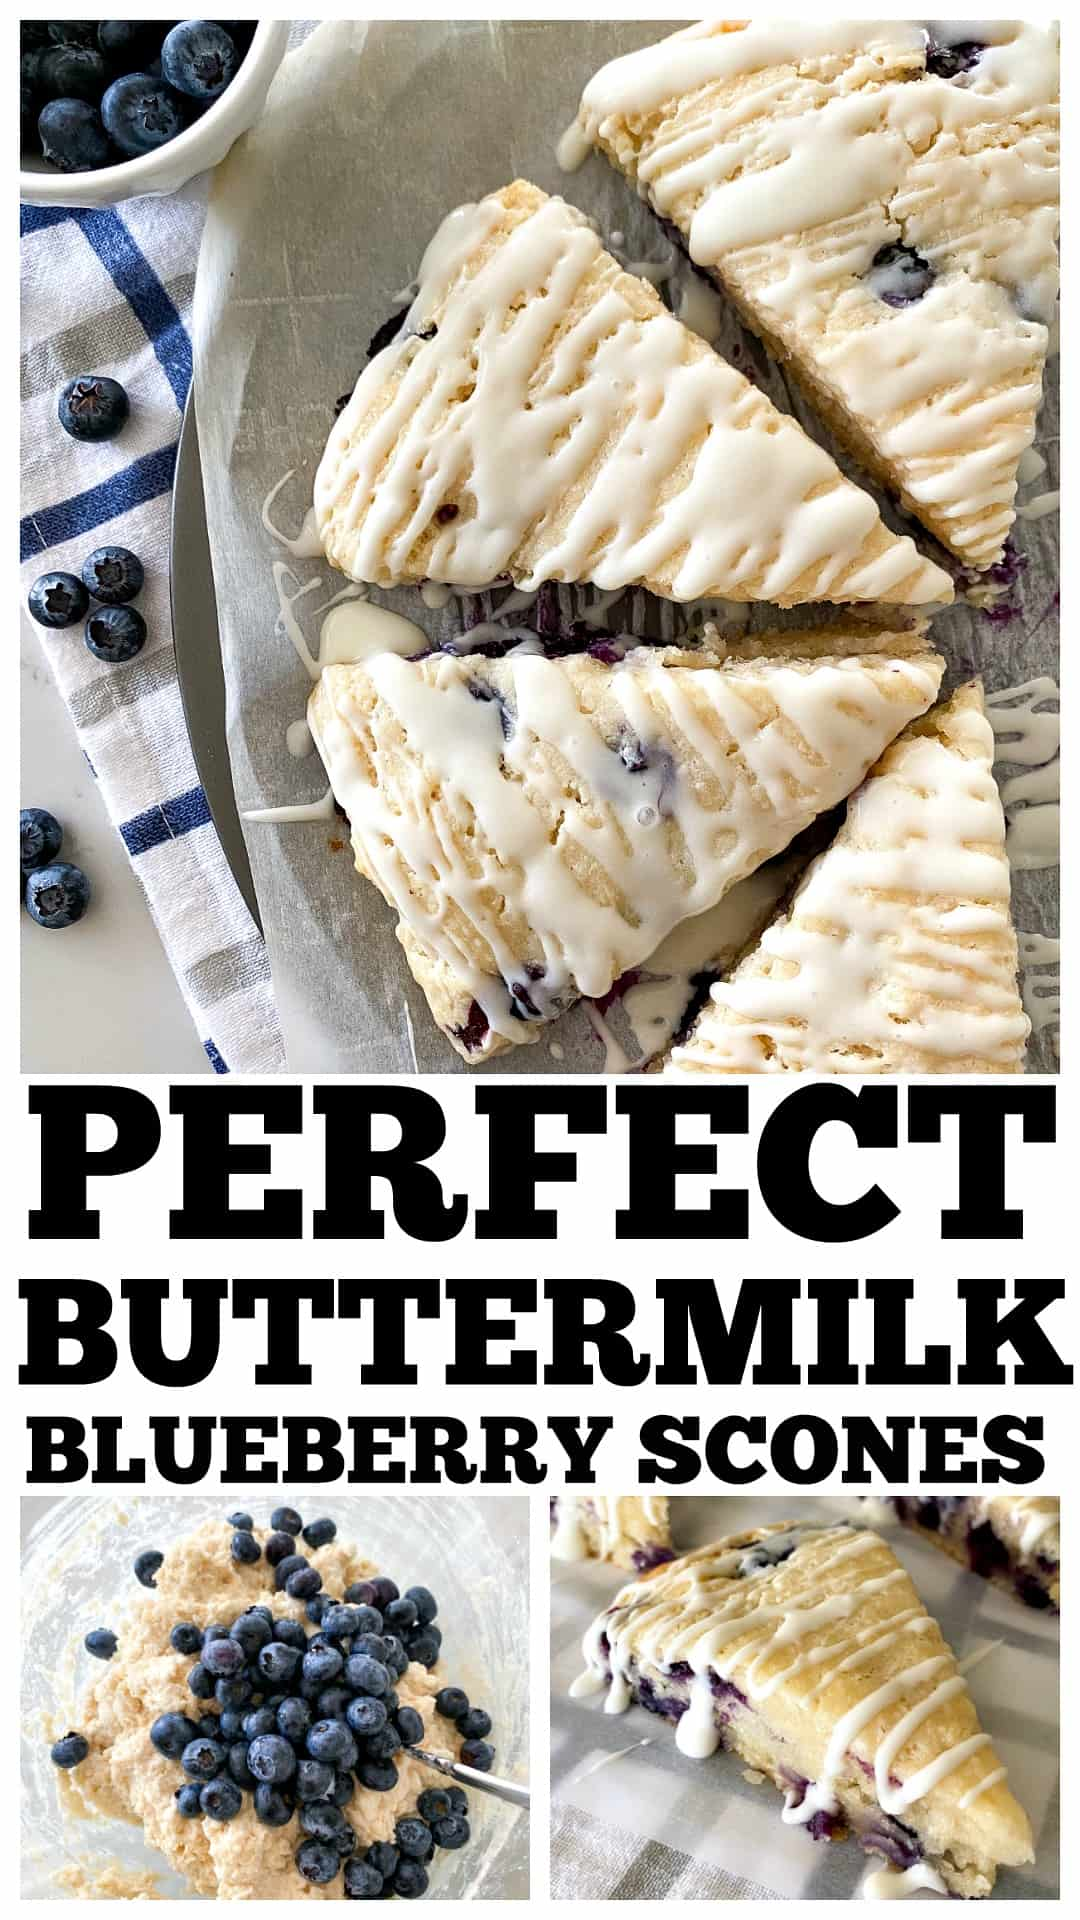 photo collage of blueberry scones